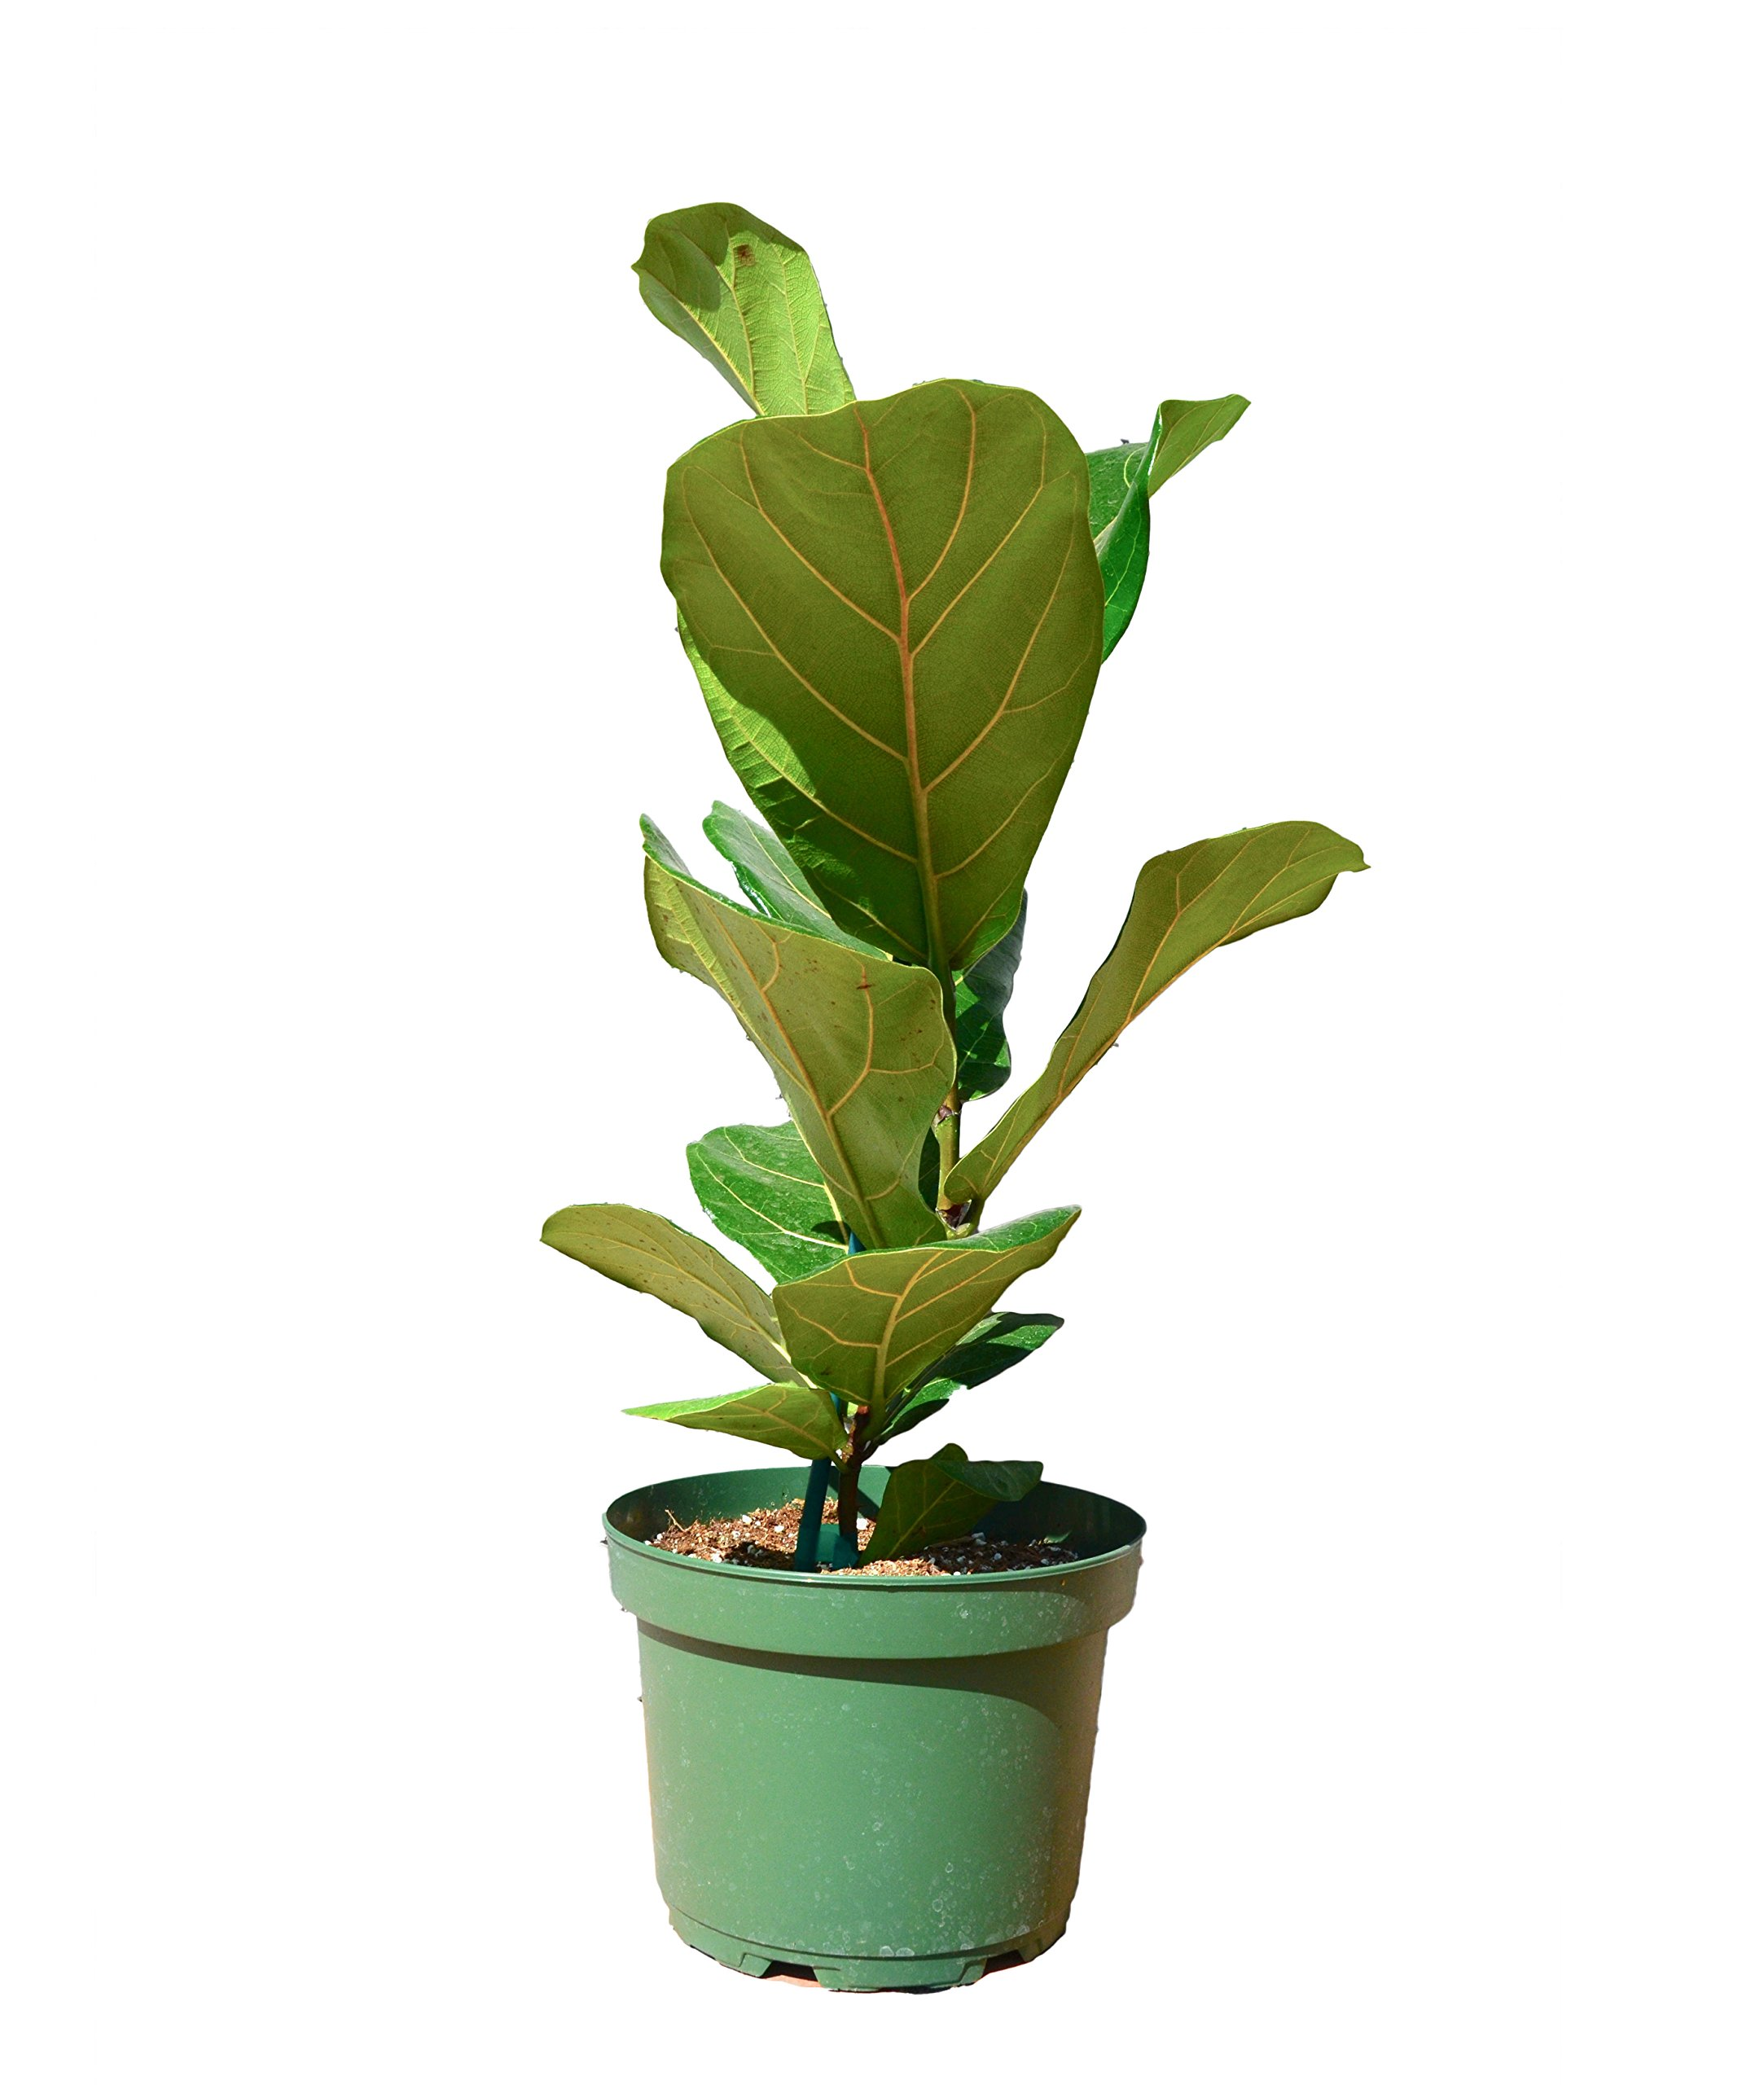 Ficus Lyrata Plant - In 8'' Pot/'Fiddle Leaf Fig'/18'' - 24'' Tall/Live Plant/FREE Care Guide/House Plant/EASY CARE